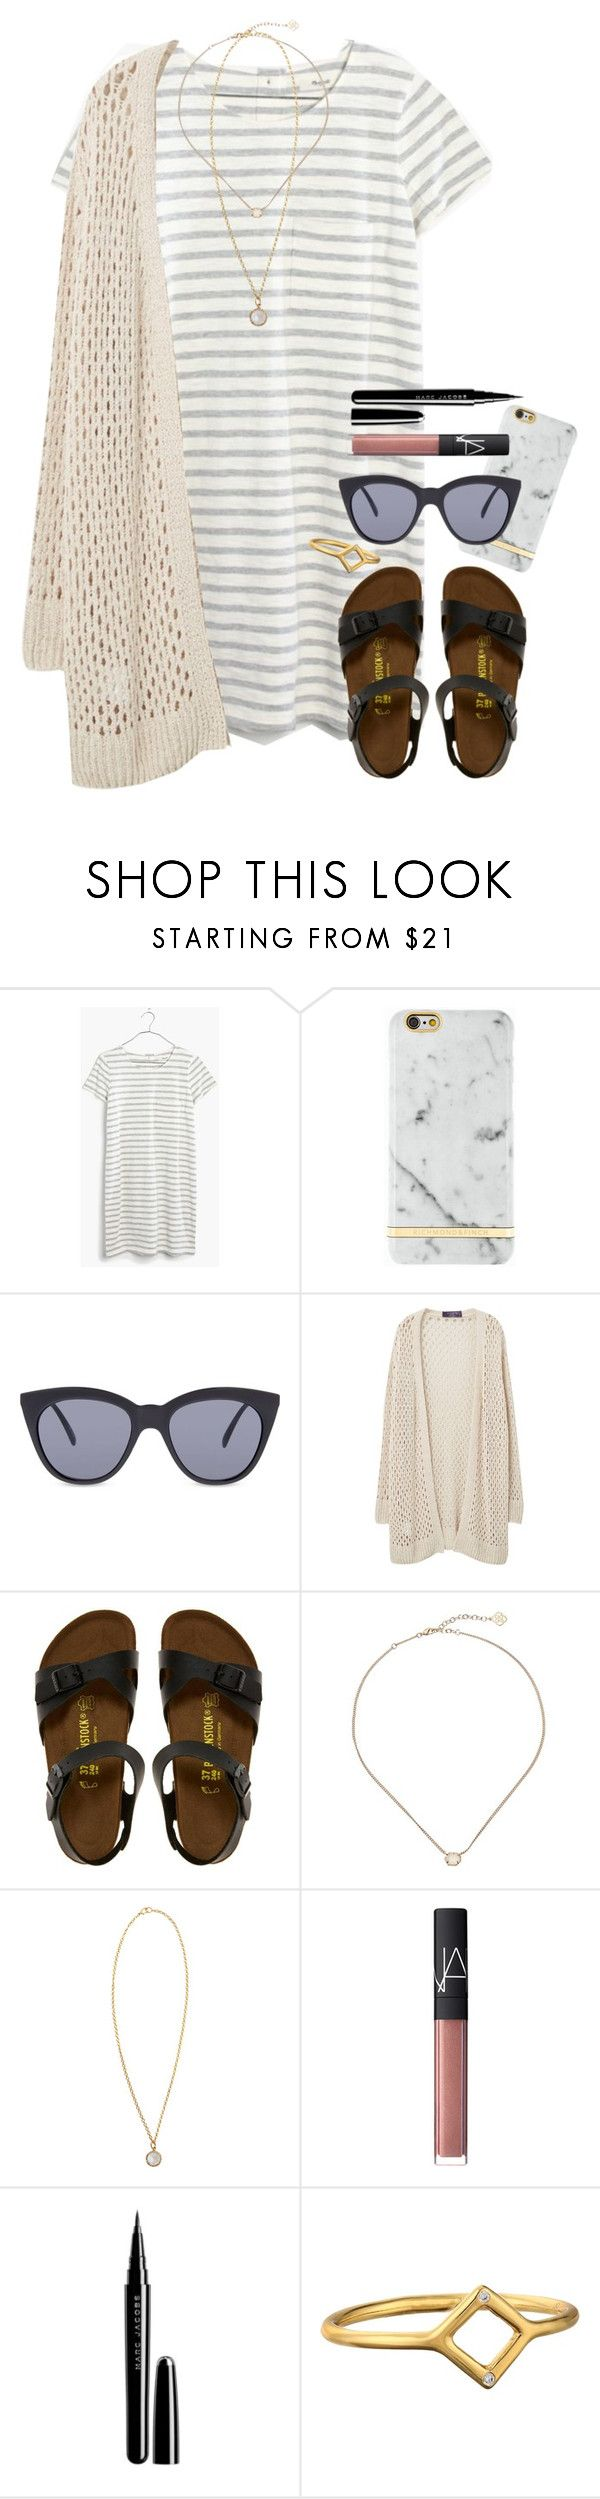 xoxo by shopgirll on Polyvore featuring Madewell, Violeta by Mango, Birkenstock, Irene Neuwirth, Kendra Scott, Gorjana, Le Specs, Richmond & Finch, Marc Jacobs and NARS Cosmetics